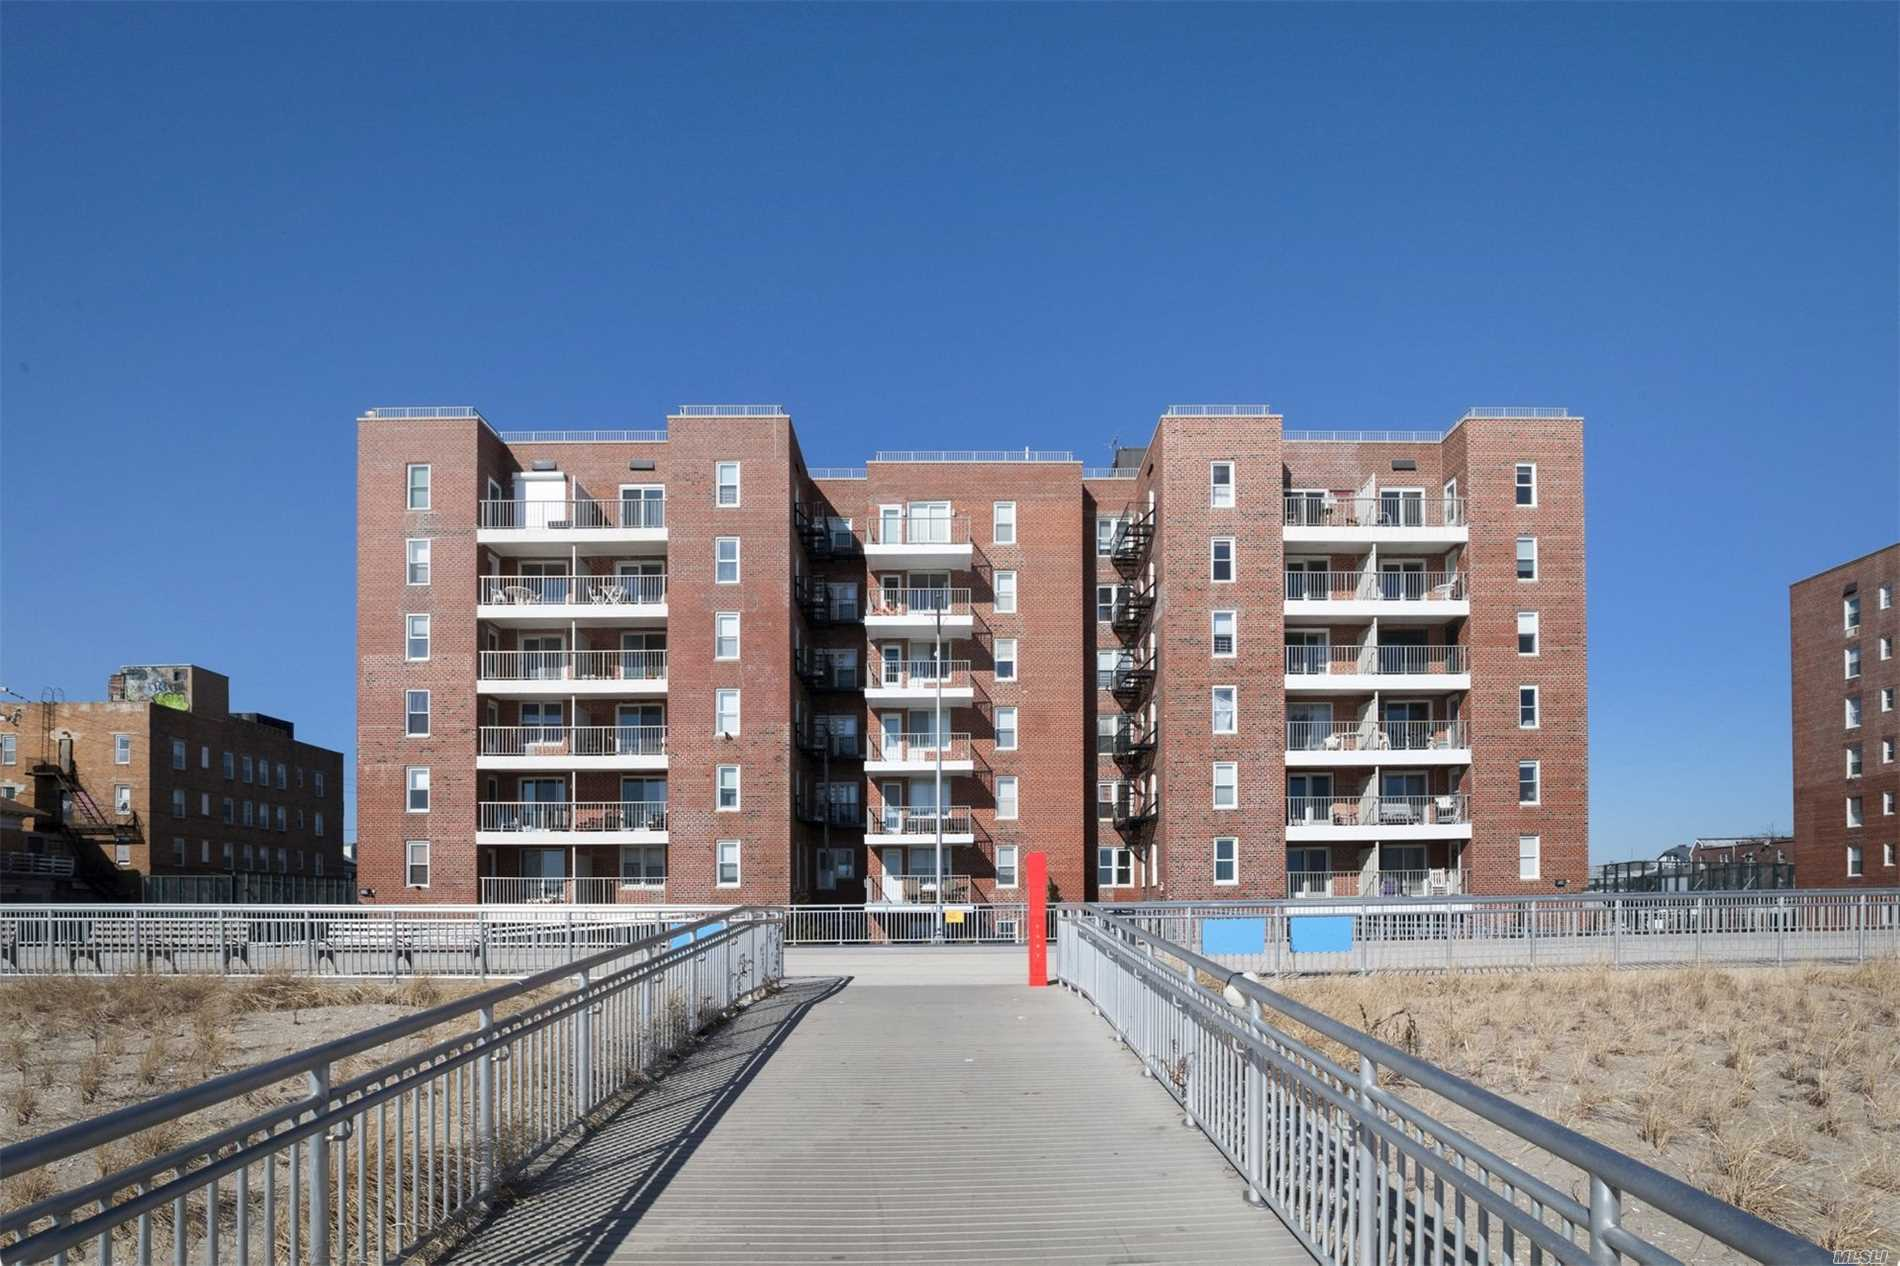 Move Right In To This Fabulous Oceanfront 2 Bedroom Home In A Very Clean And Quiet Building. This 6th Fl Unit Is Being Used A 1Br But Can Be Easily Converted Back To A 2Br. Enjoy The Gorgeous Views From Your Private Terrace Overlooking The Boardwalk Offering 7 Miles Of Biking, Jogging, Lively Concessions Stands, Arts & Craft Fairs And So Much More. Hardwood Floors Thru Out. Bike And Storage Room Is Optional. Parking Is Extra And Just Steps From The Building. Pets Are Not Permitted.